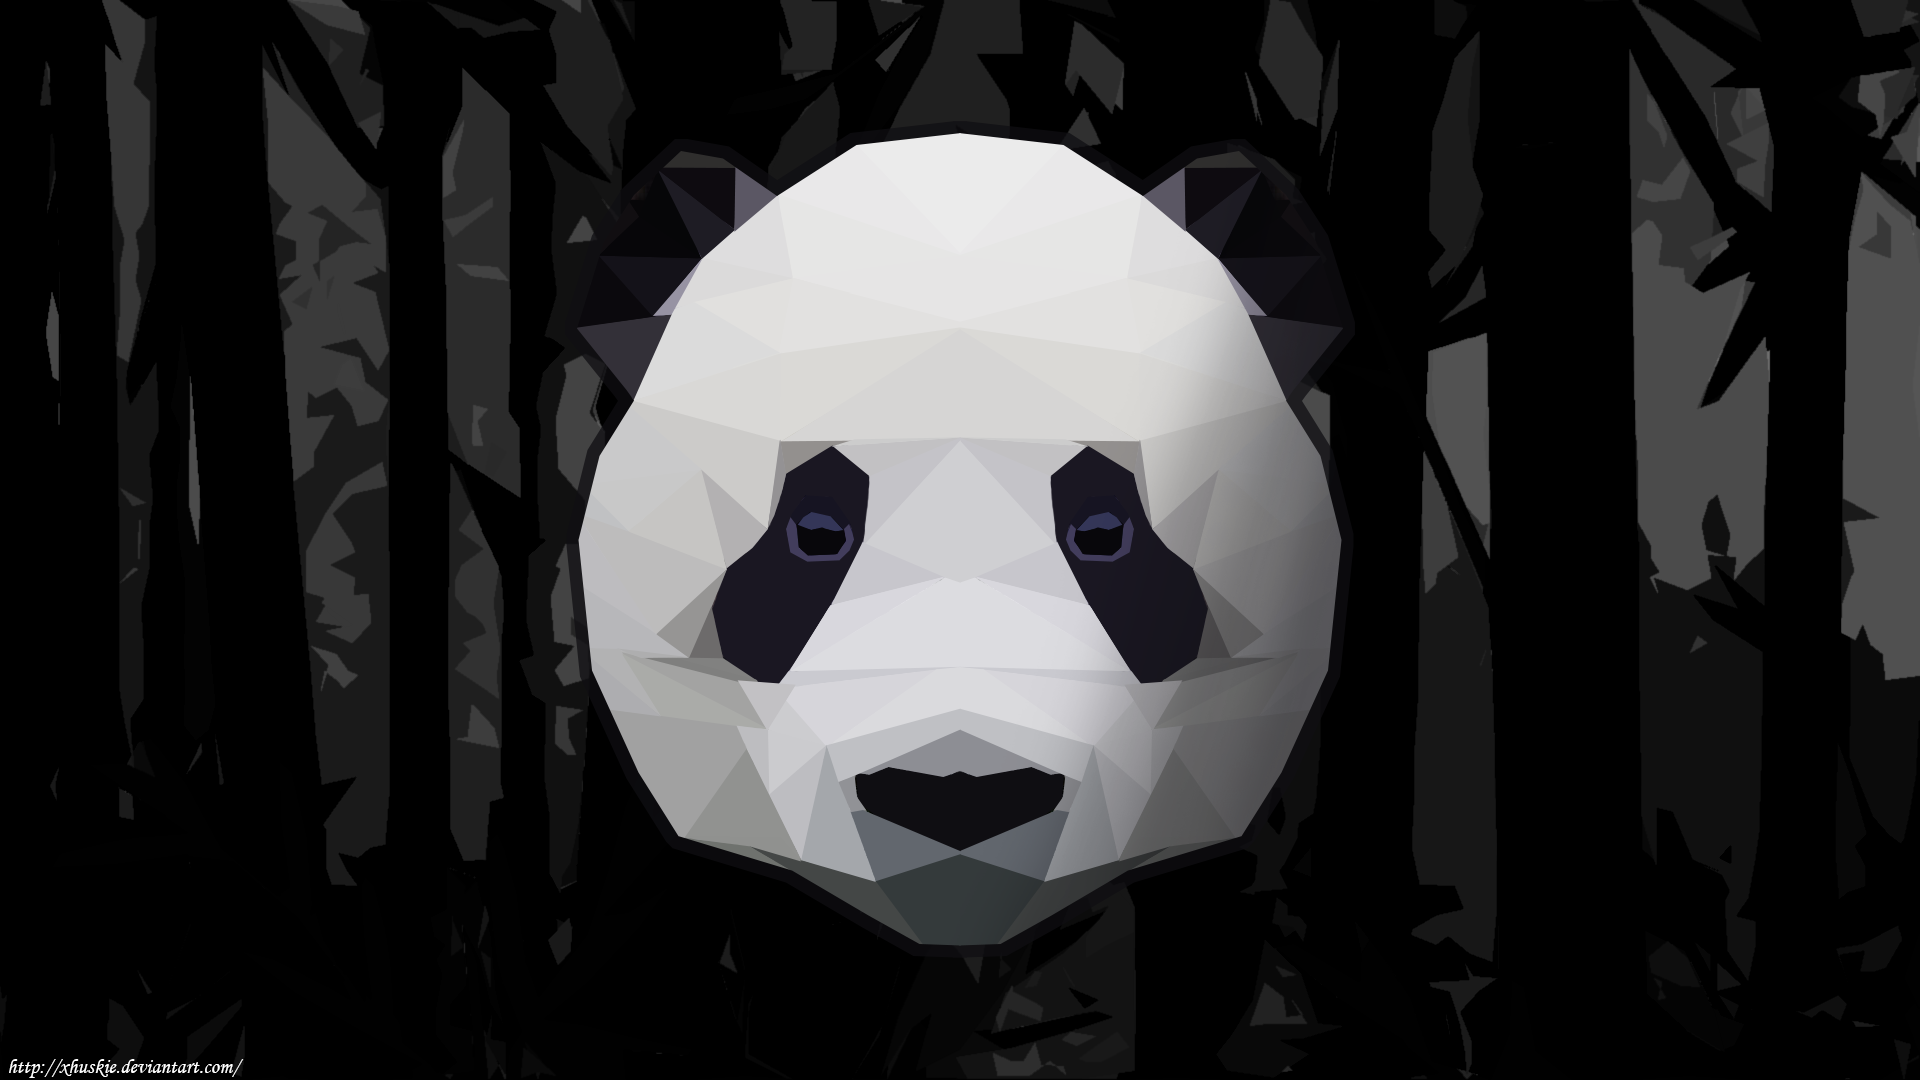 Low Polly Panda Bamboo Wallpaper (Black And White) By XHuskie On DeviantArt